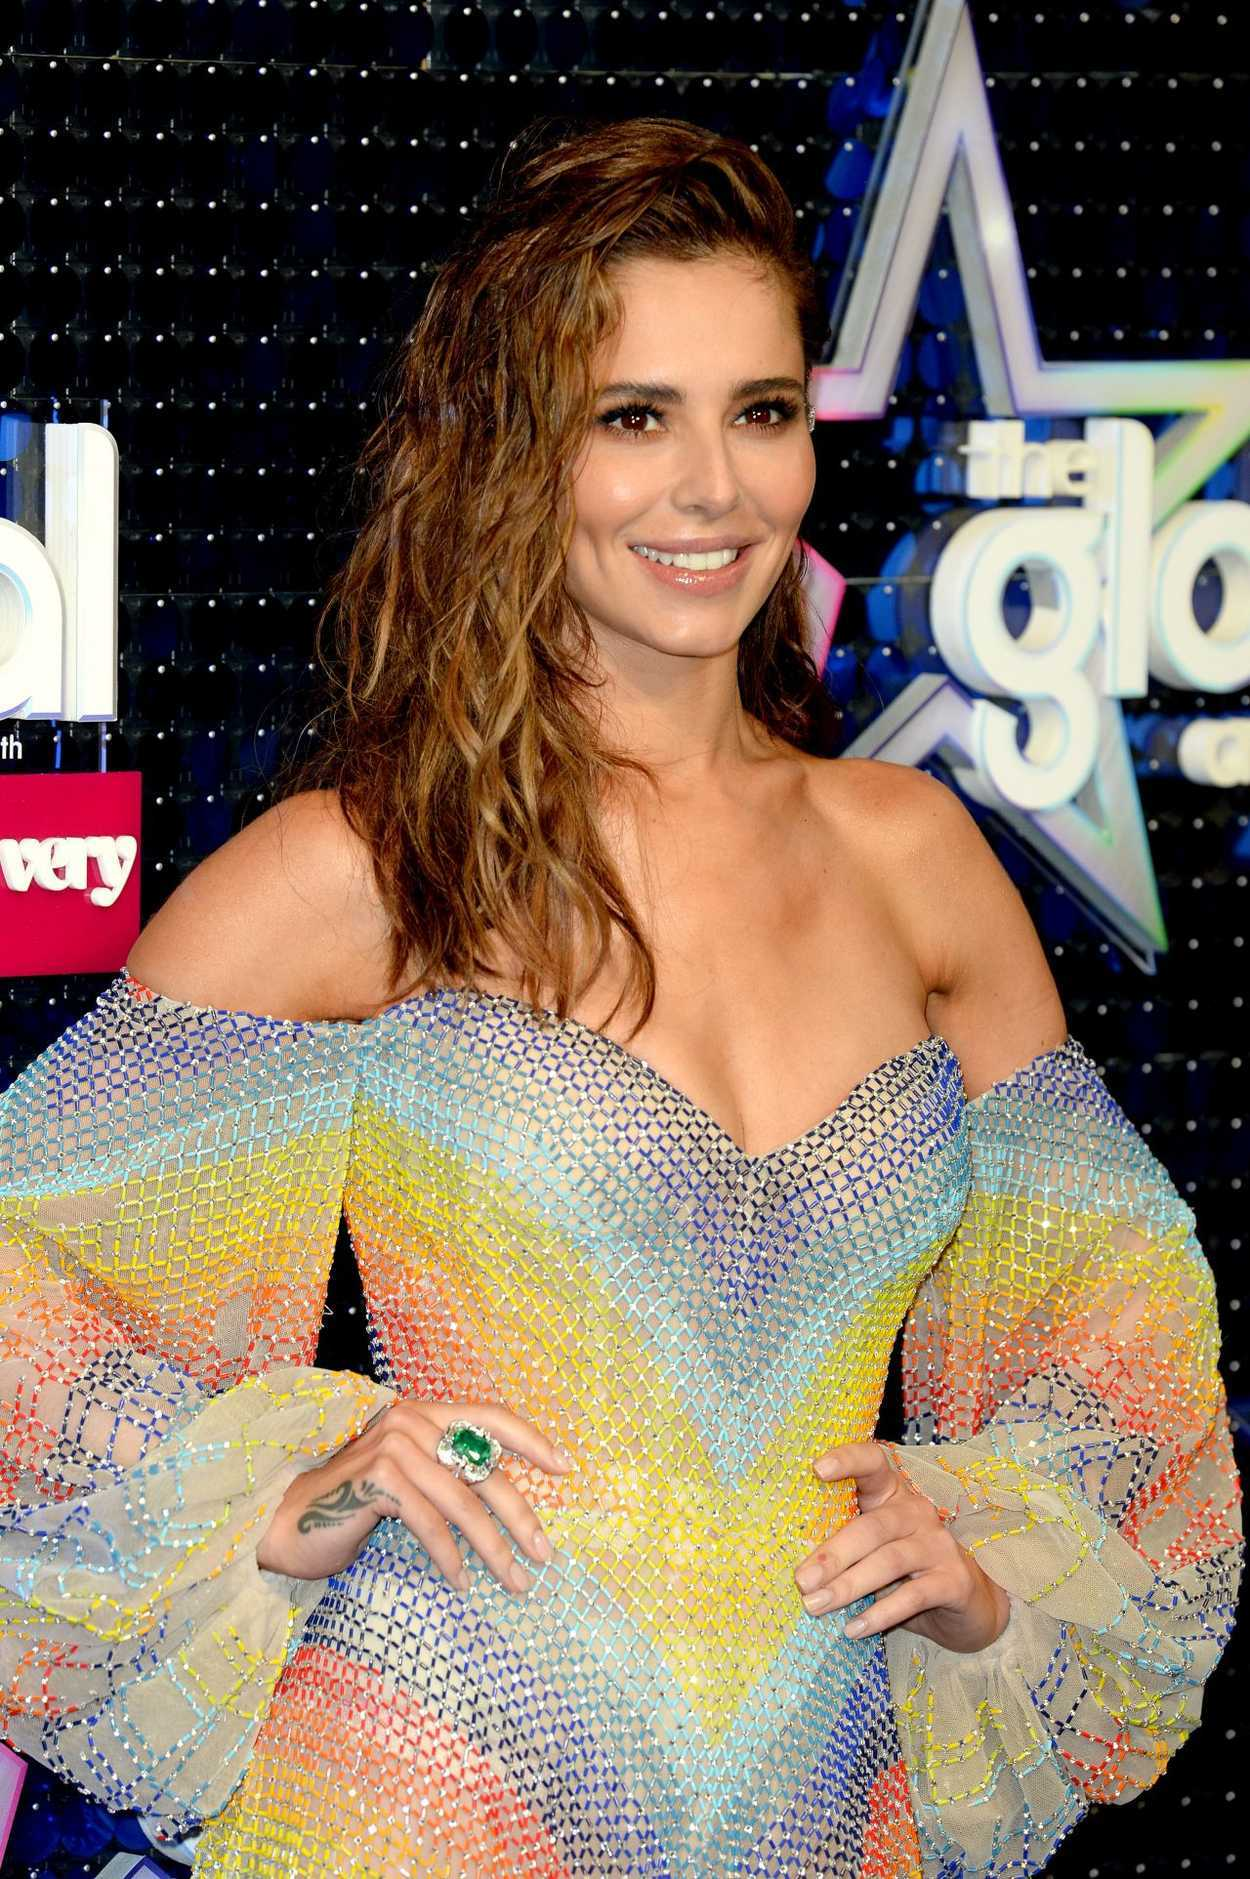 Cheryl Tweedy Attends 2019 Global Awards In London 0307